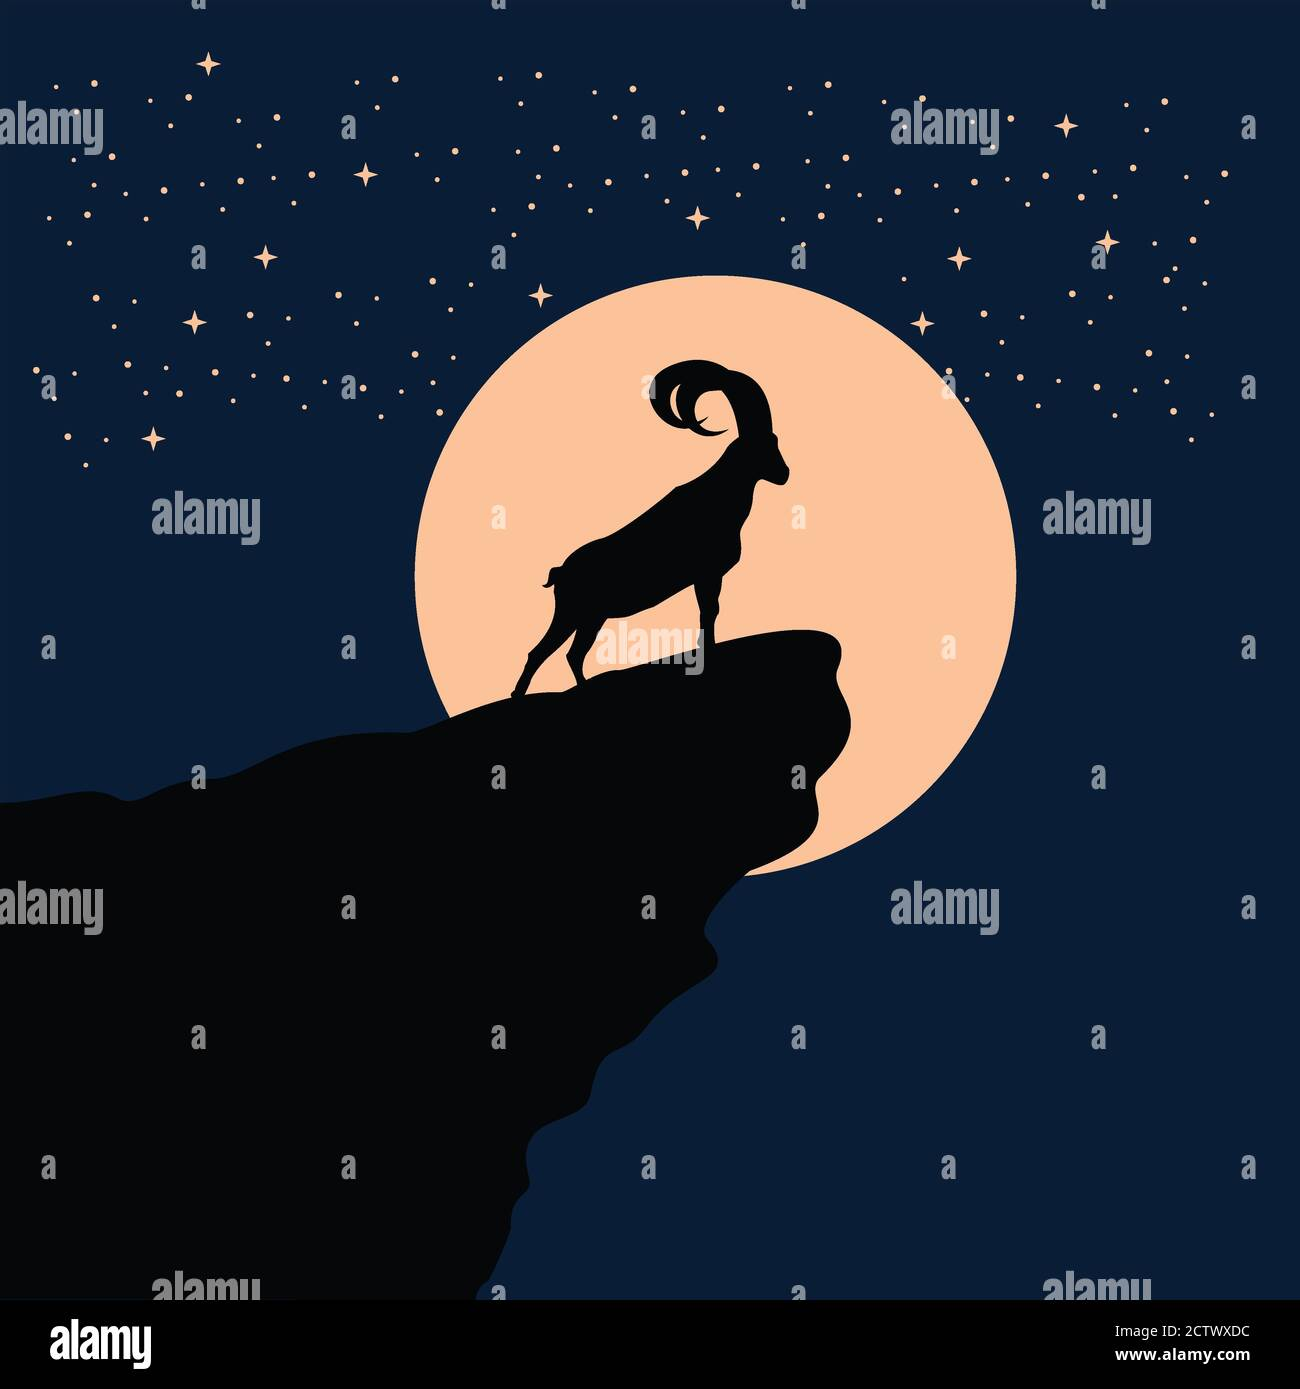 Lamb Silhouette High Resolution Stock Photography And Images Alamy